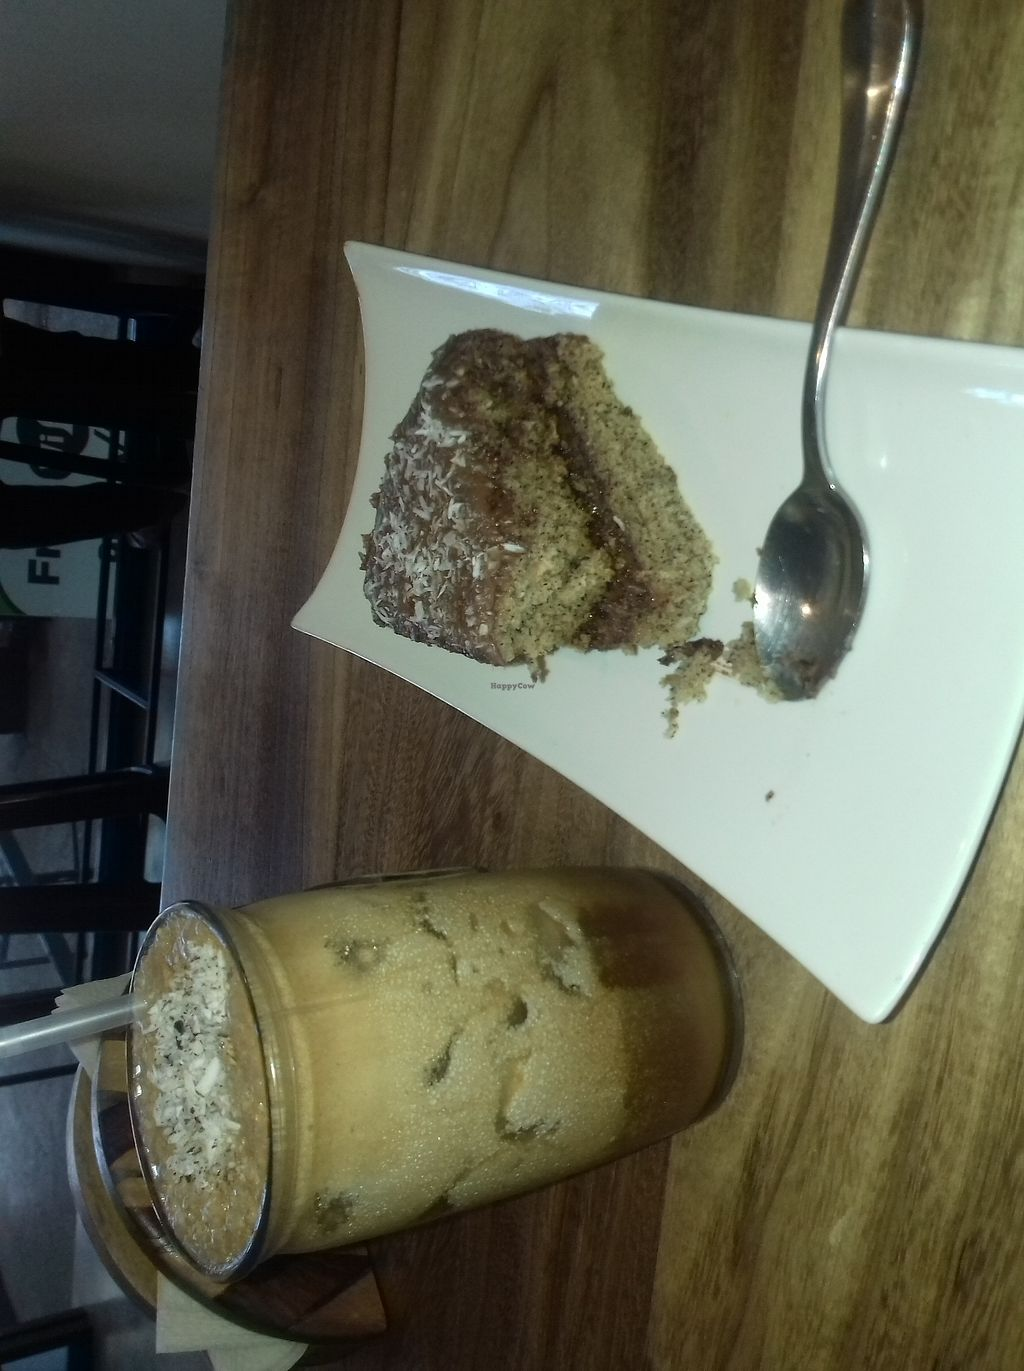 """Photo of Ticoffia  by <a href=""""/members/profile/Mima"""">Mima</a> <br/>Best cake in town <br/> February 20, 2018  - <a href='/contact/abuse/image/109357/361712'>Report</a>"""